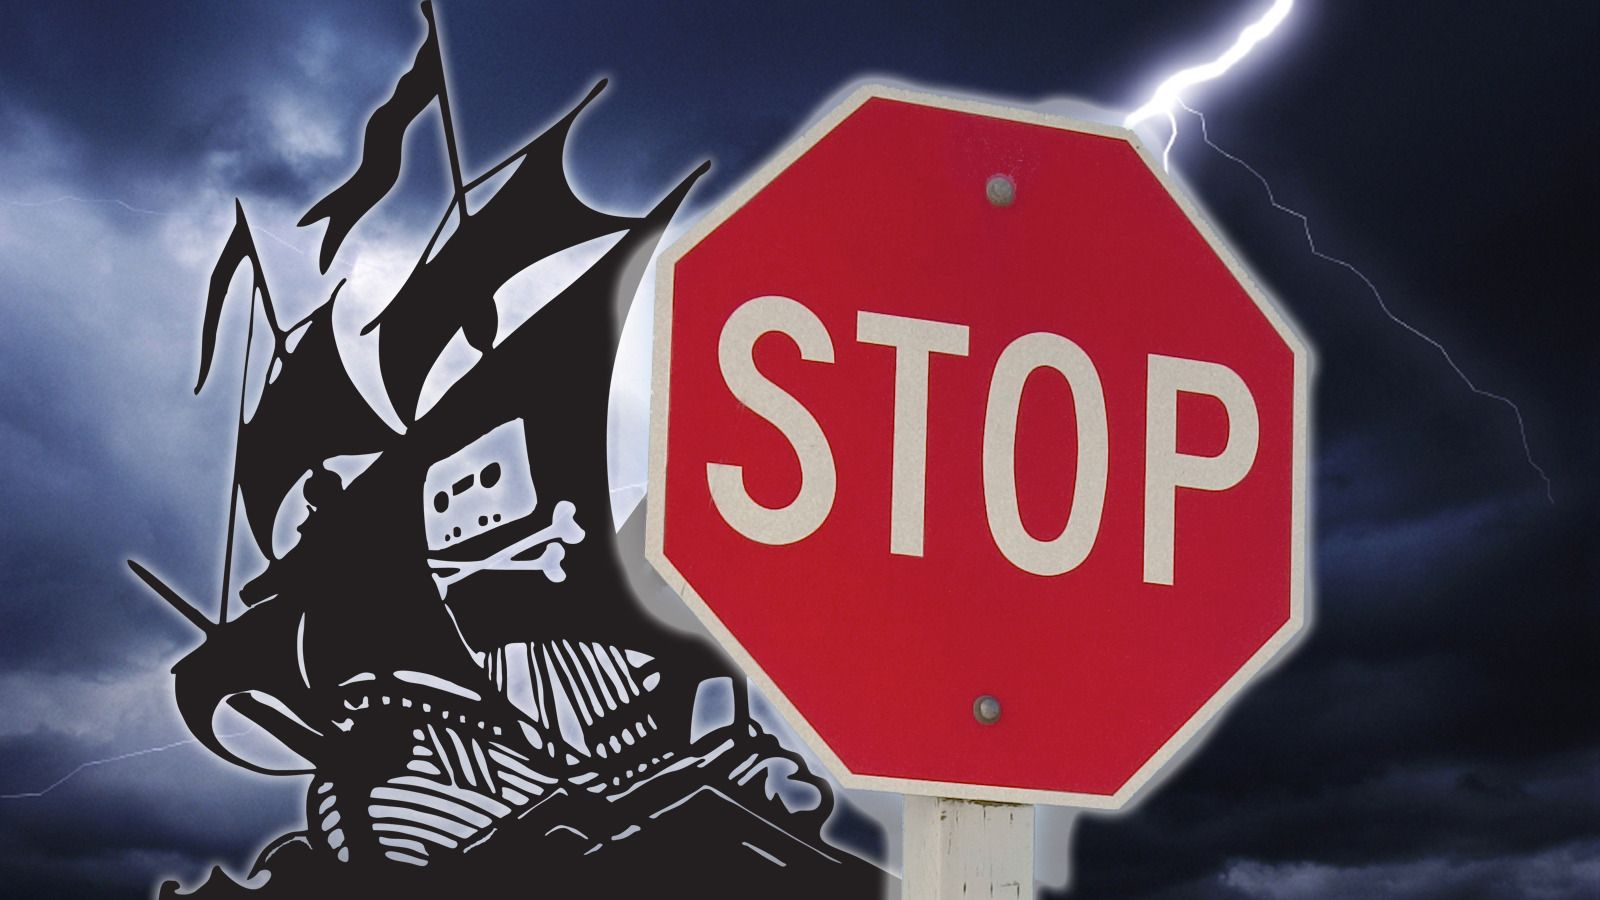 Blokkeringen av The Pirate Bay har startet